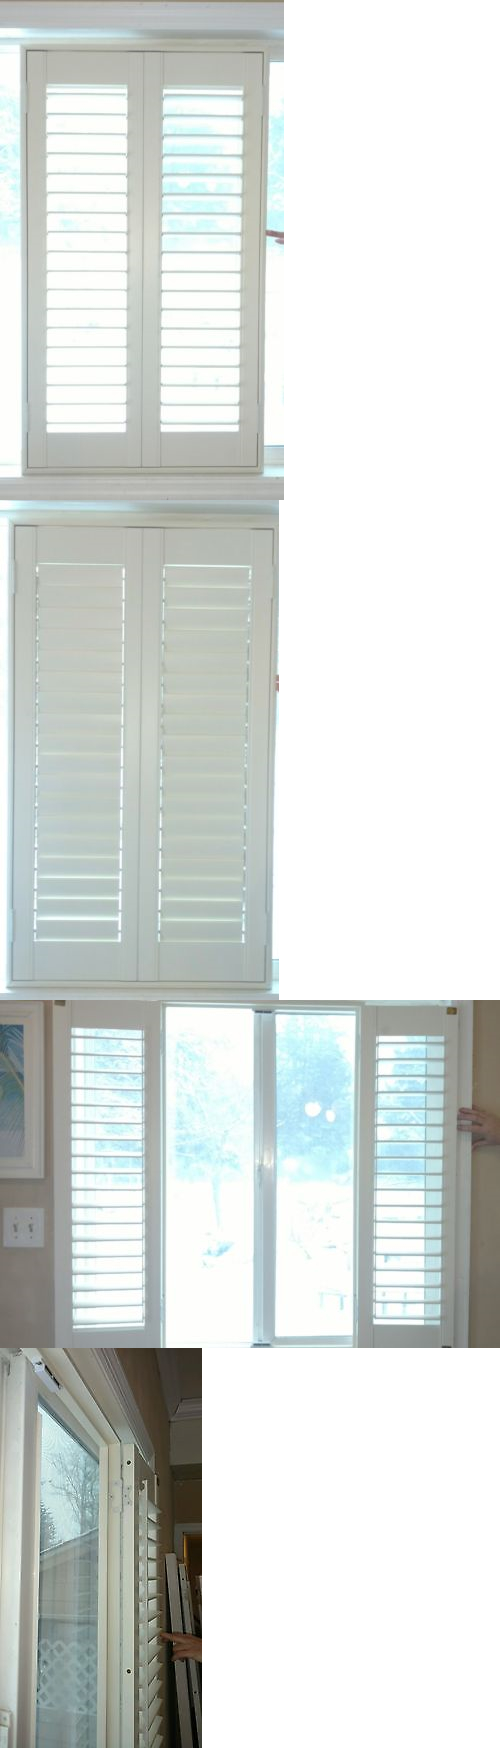 Shutters 66799: New Full View Interior Solid Wood Plantation Shutters W  Frame, 2.5 Louvers